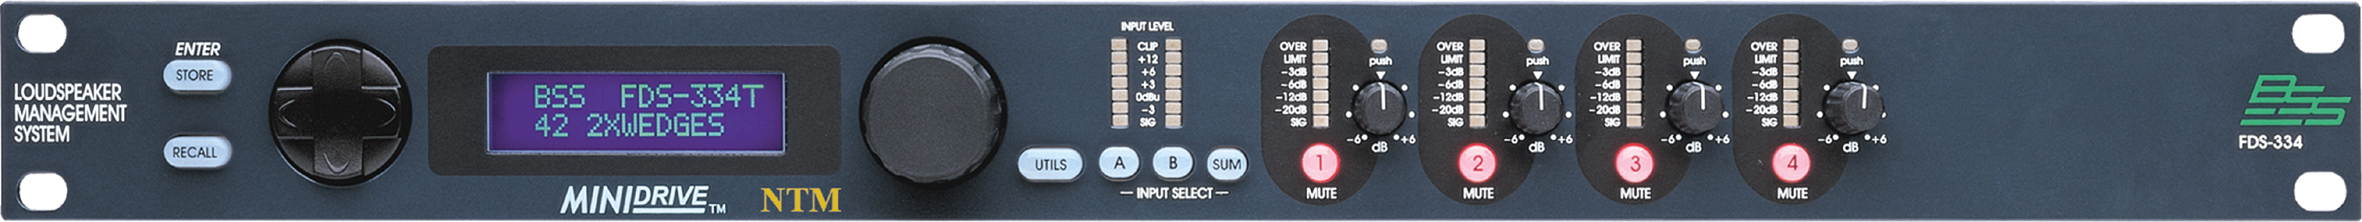 FDS-334T | BSS Networked Audio Systems